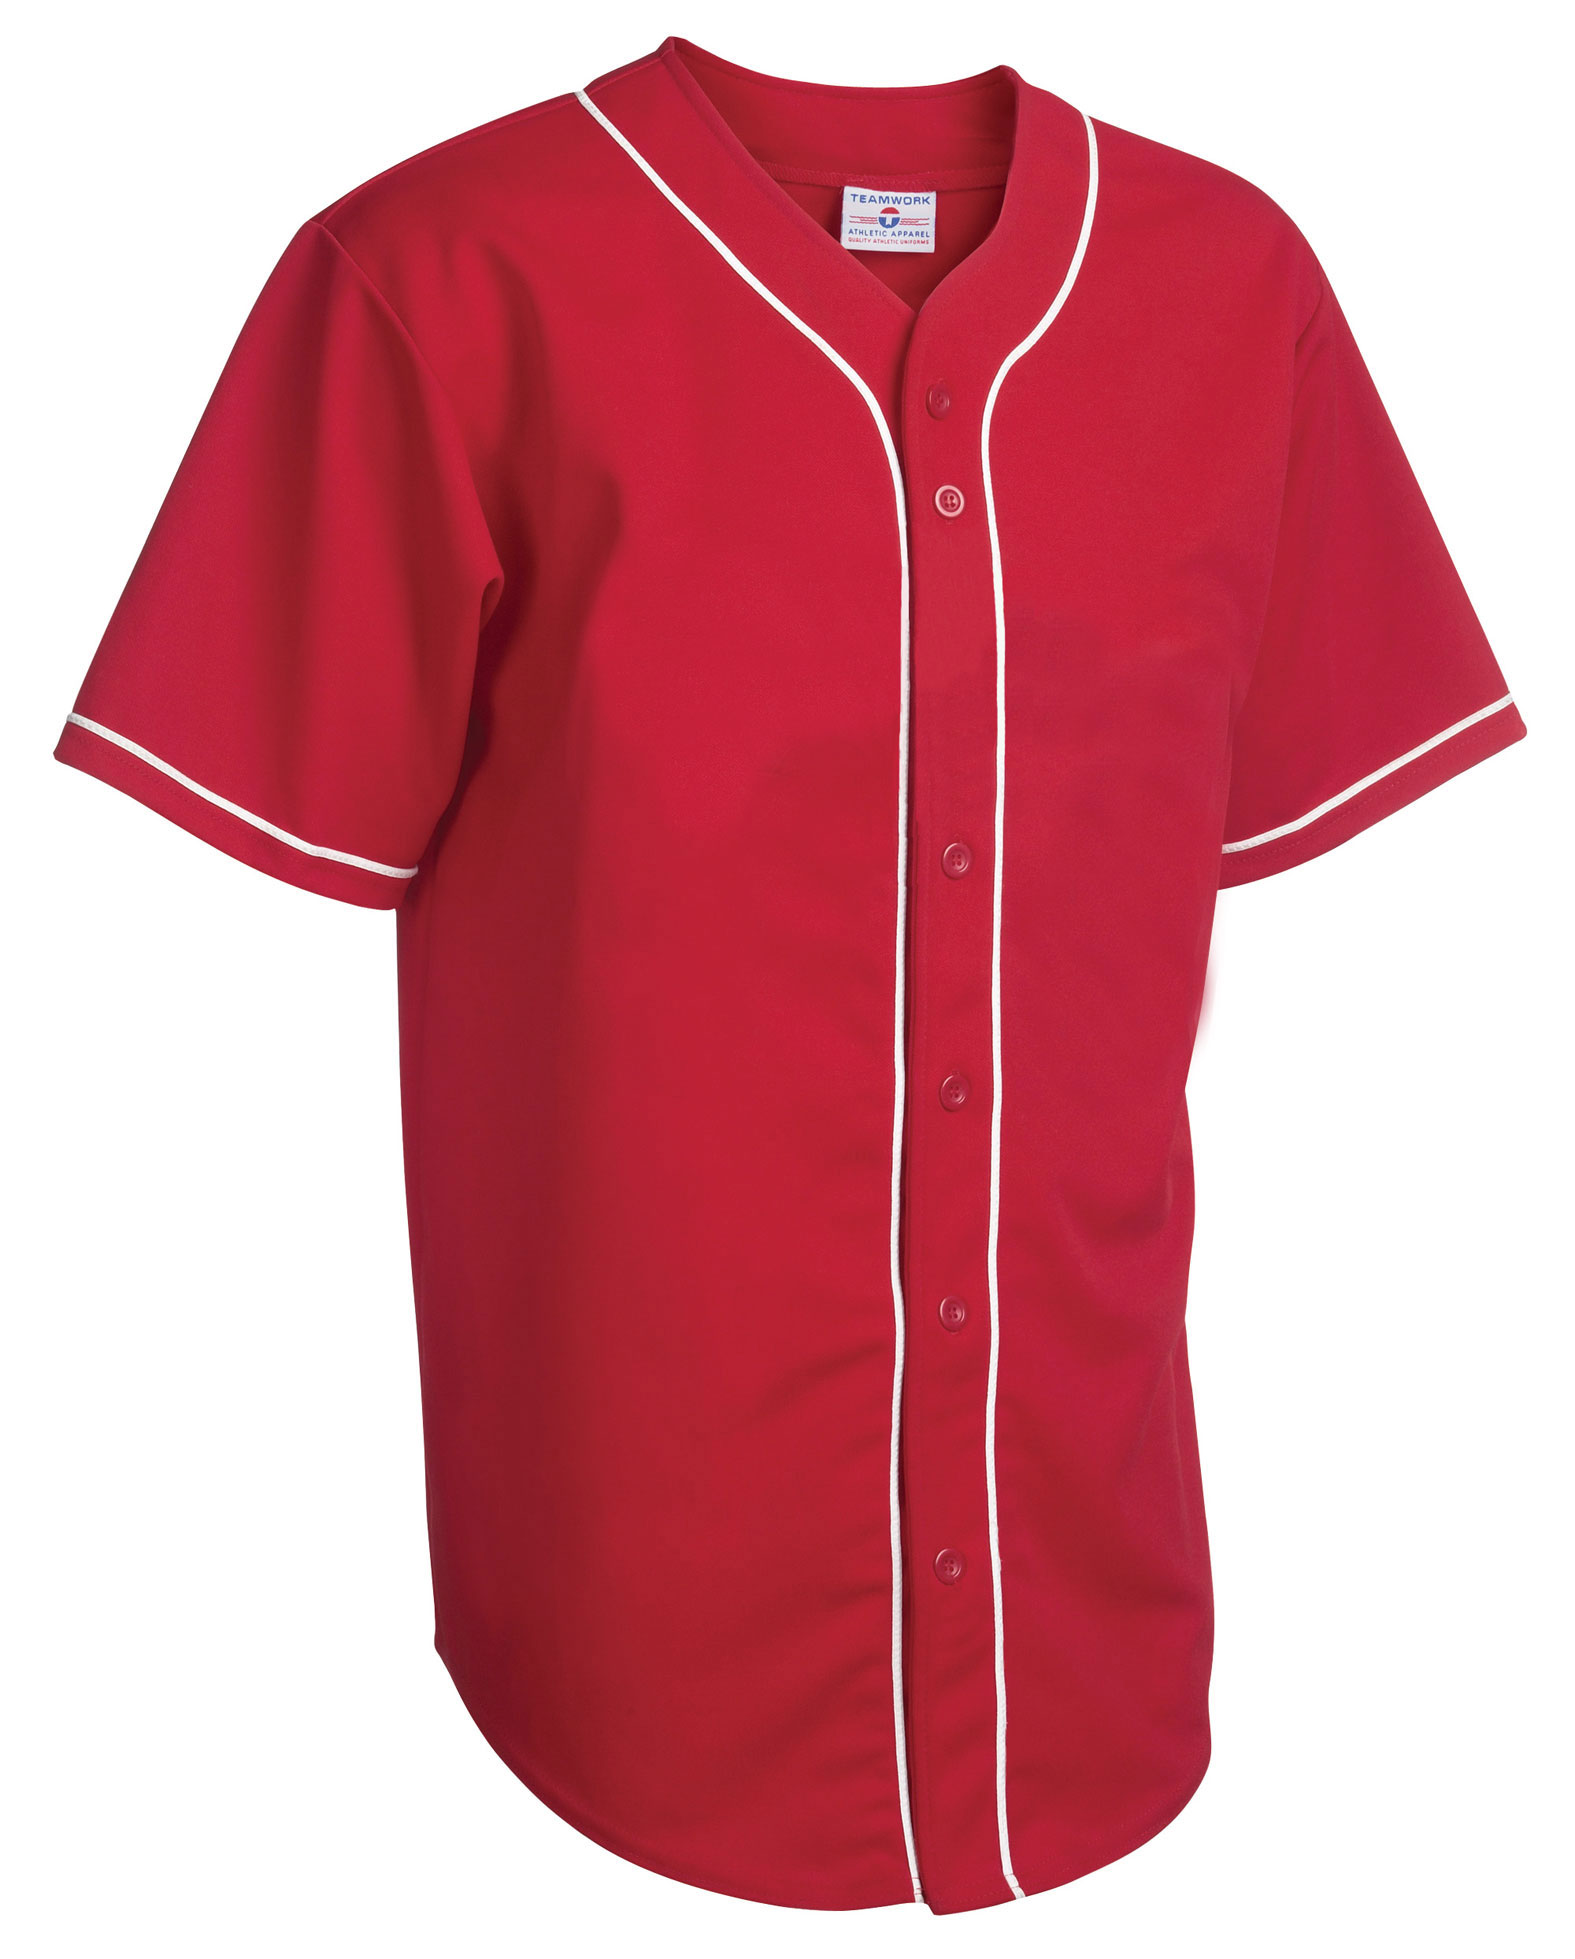 Teamwork Youth Walk Off Baseball Jerseys with Sewn-On Braid - CLOSEOUT